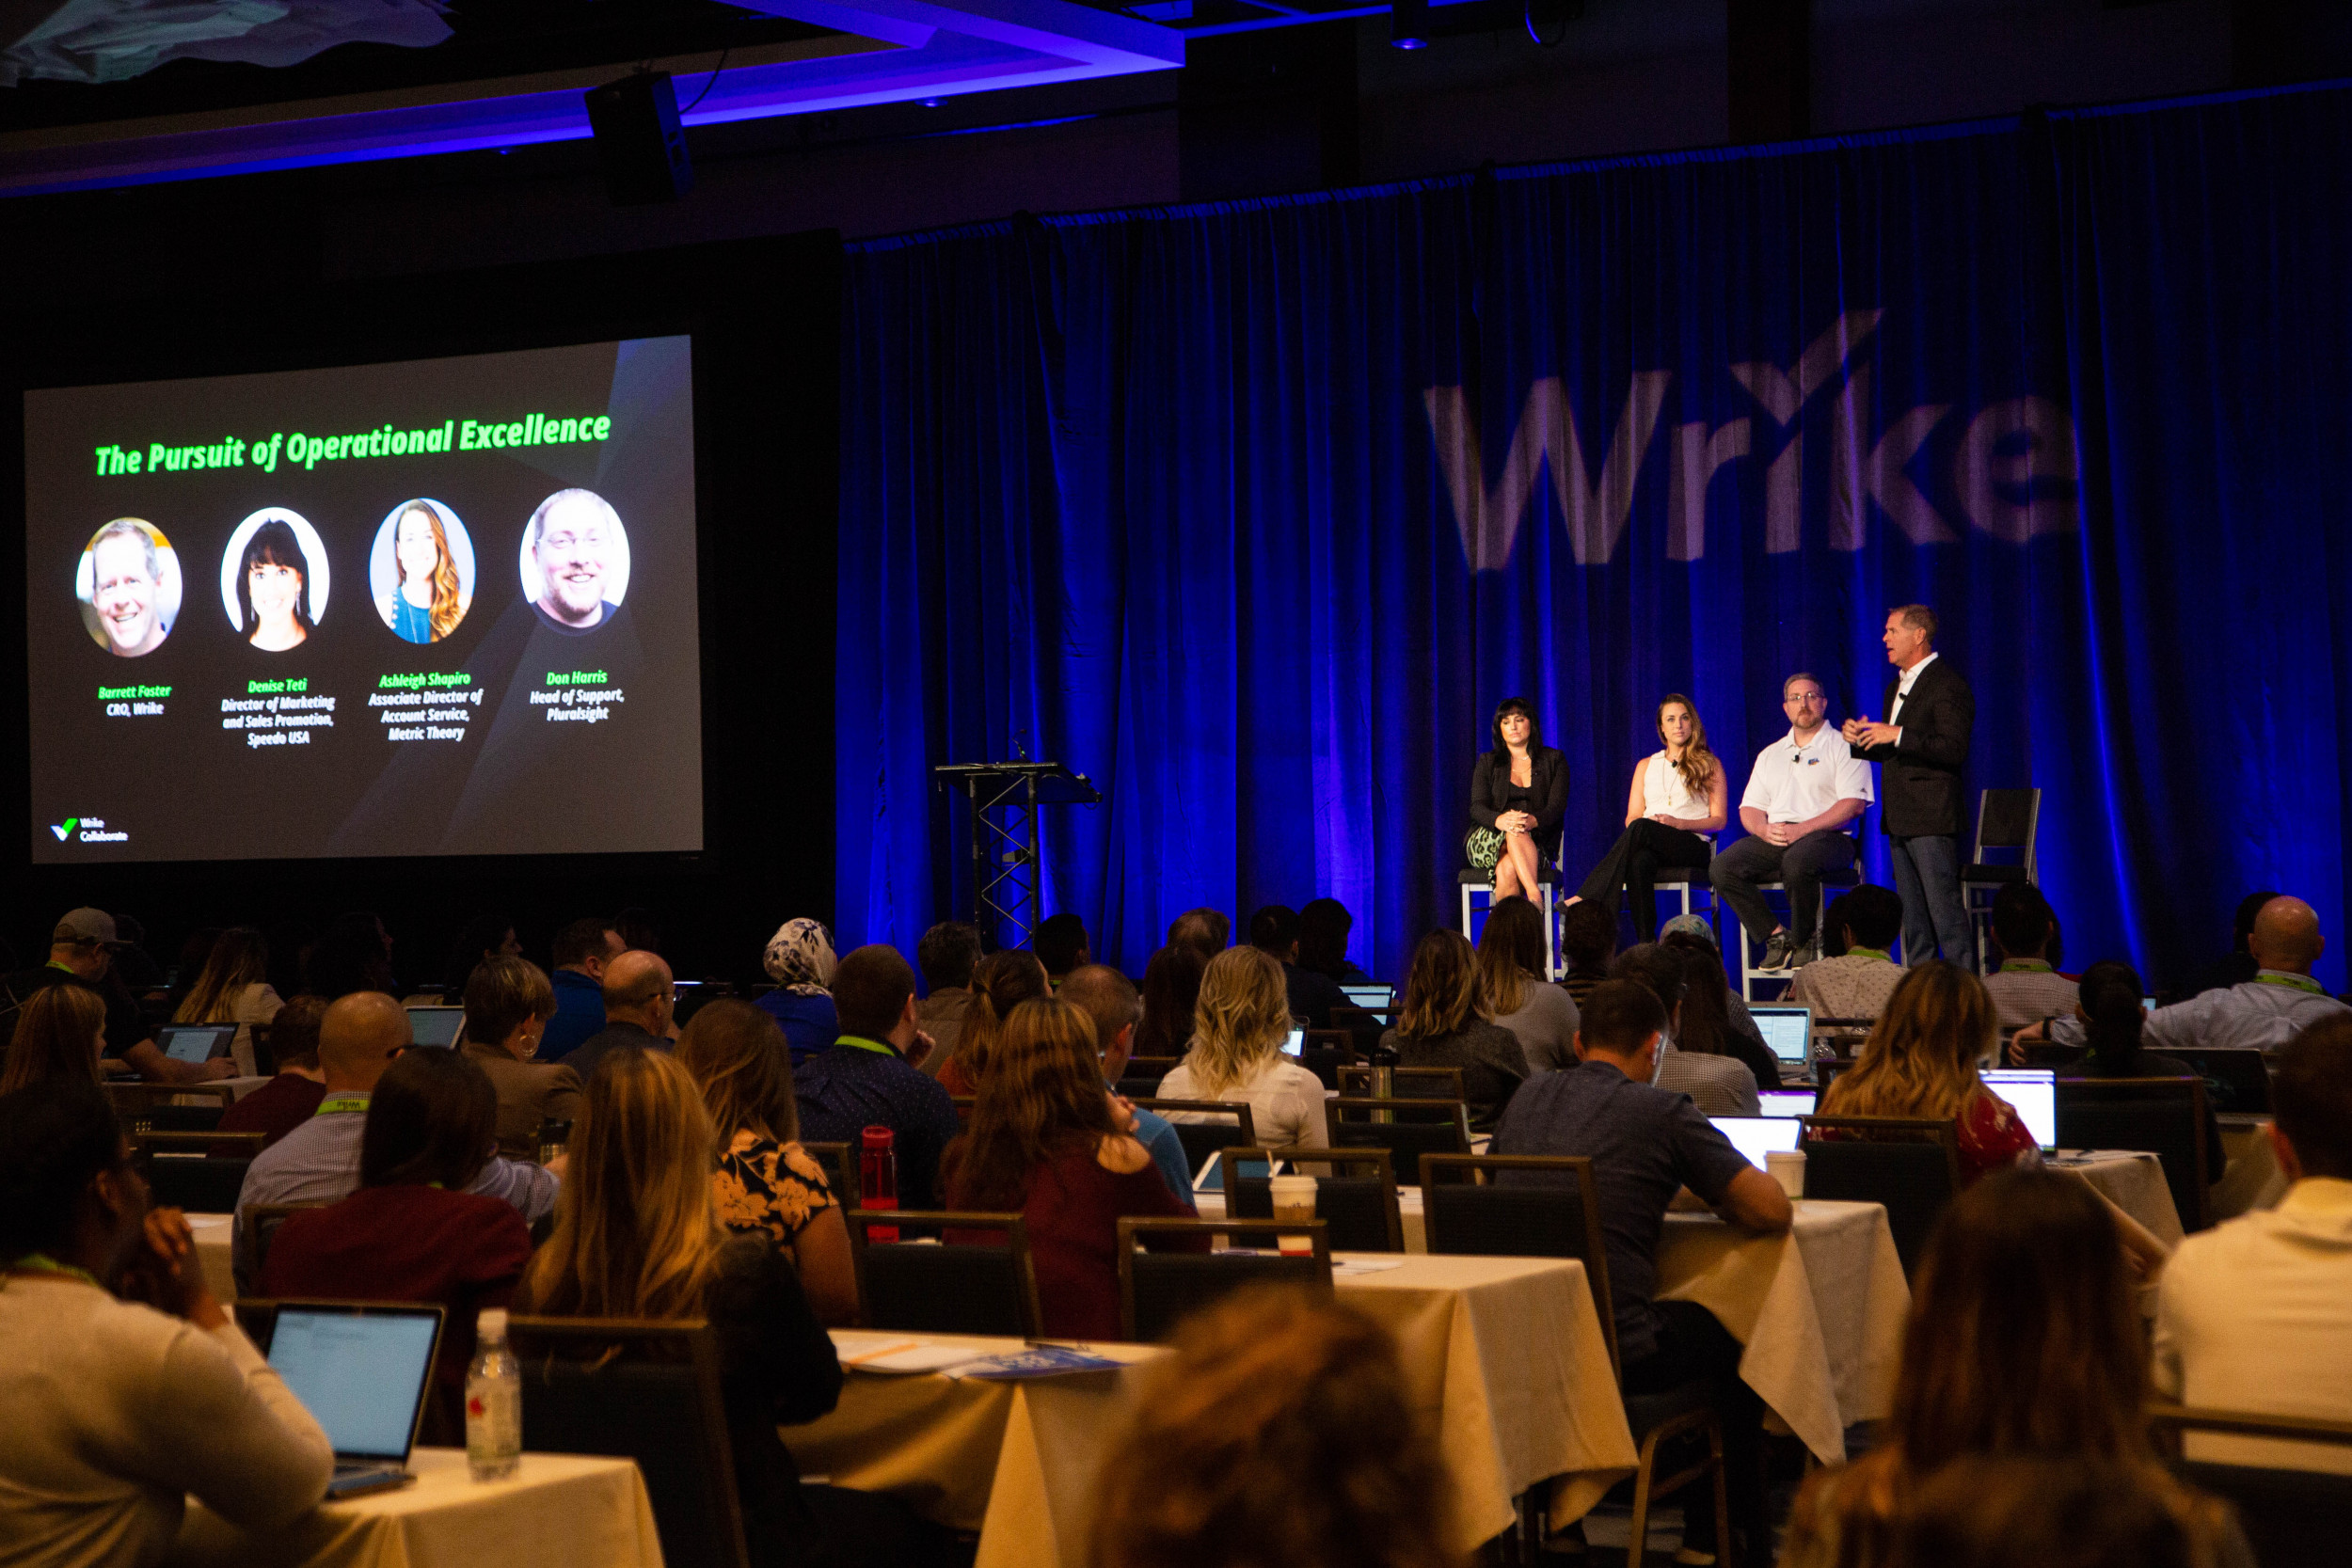 Wrike Collaborate, Day 1: Digital Transformation